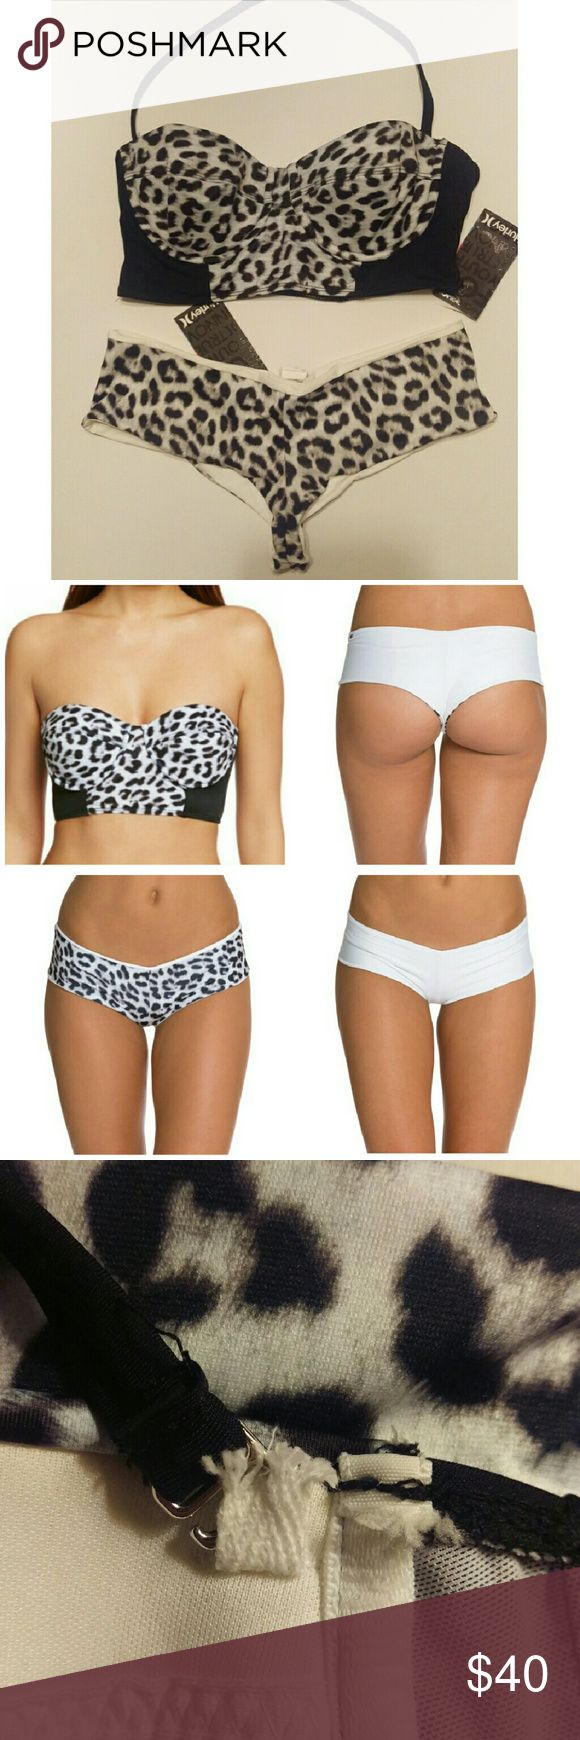 🏄🏻‍♀️☀️NWT Hurley Bustier Bikini Set New with tags Hurley underwire bustier and matching reversible bottoms. Longline top has removable halter strap and molded bra cups. Reversible cheeky bottoms  are cheetah and white. Only flaw is a small tear on the inside of top where removable strap hooks on. Although, it does not affect wear and cannot be seen. *price firm* Hurley Swim Bikinis